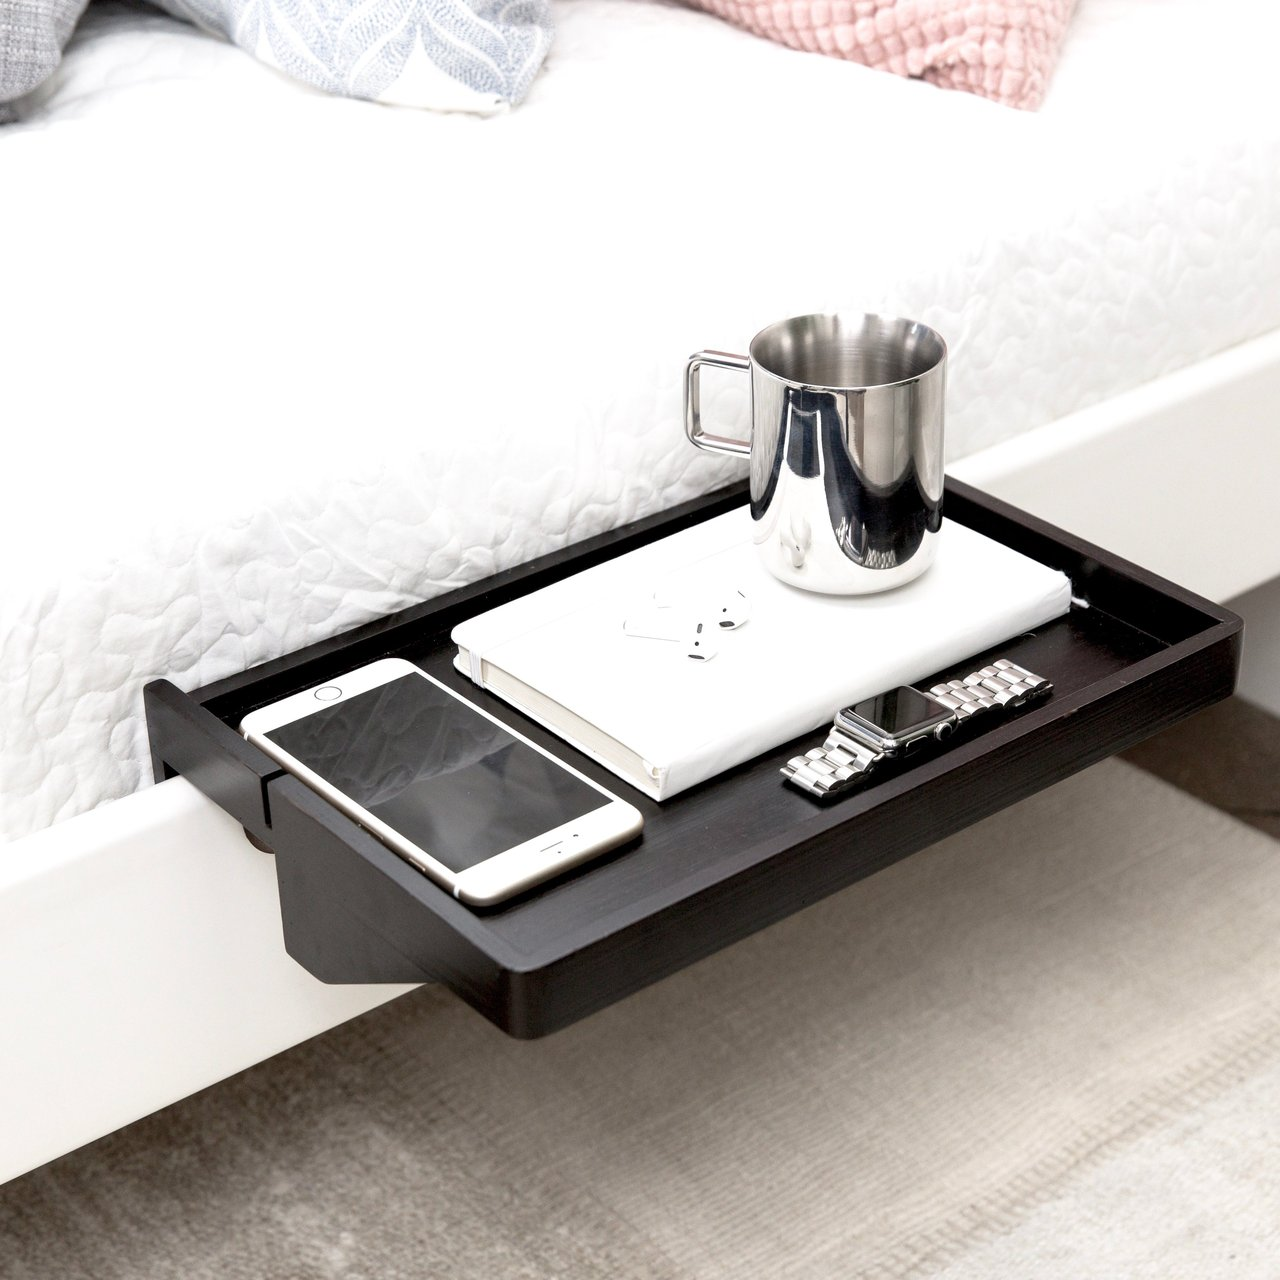 Sublime gadgets bedshelfie space saving minimalist for Space saving nightstand